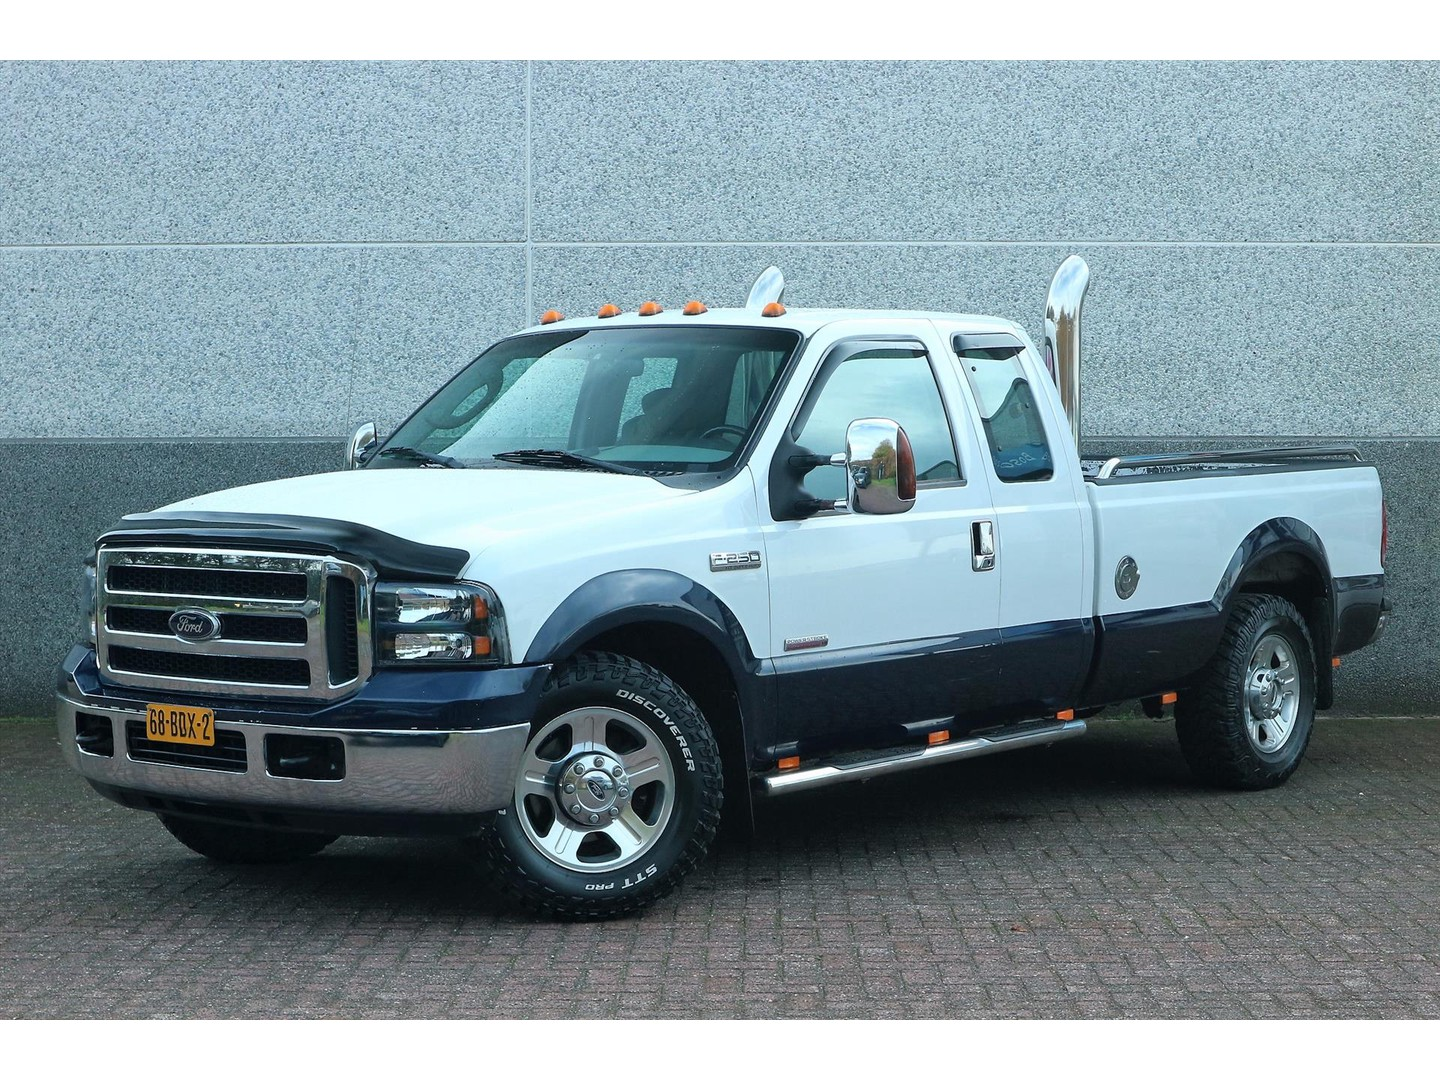 Ford usa F-250 Super duty power stroke v8